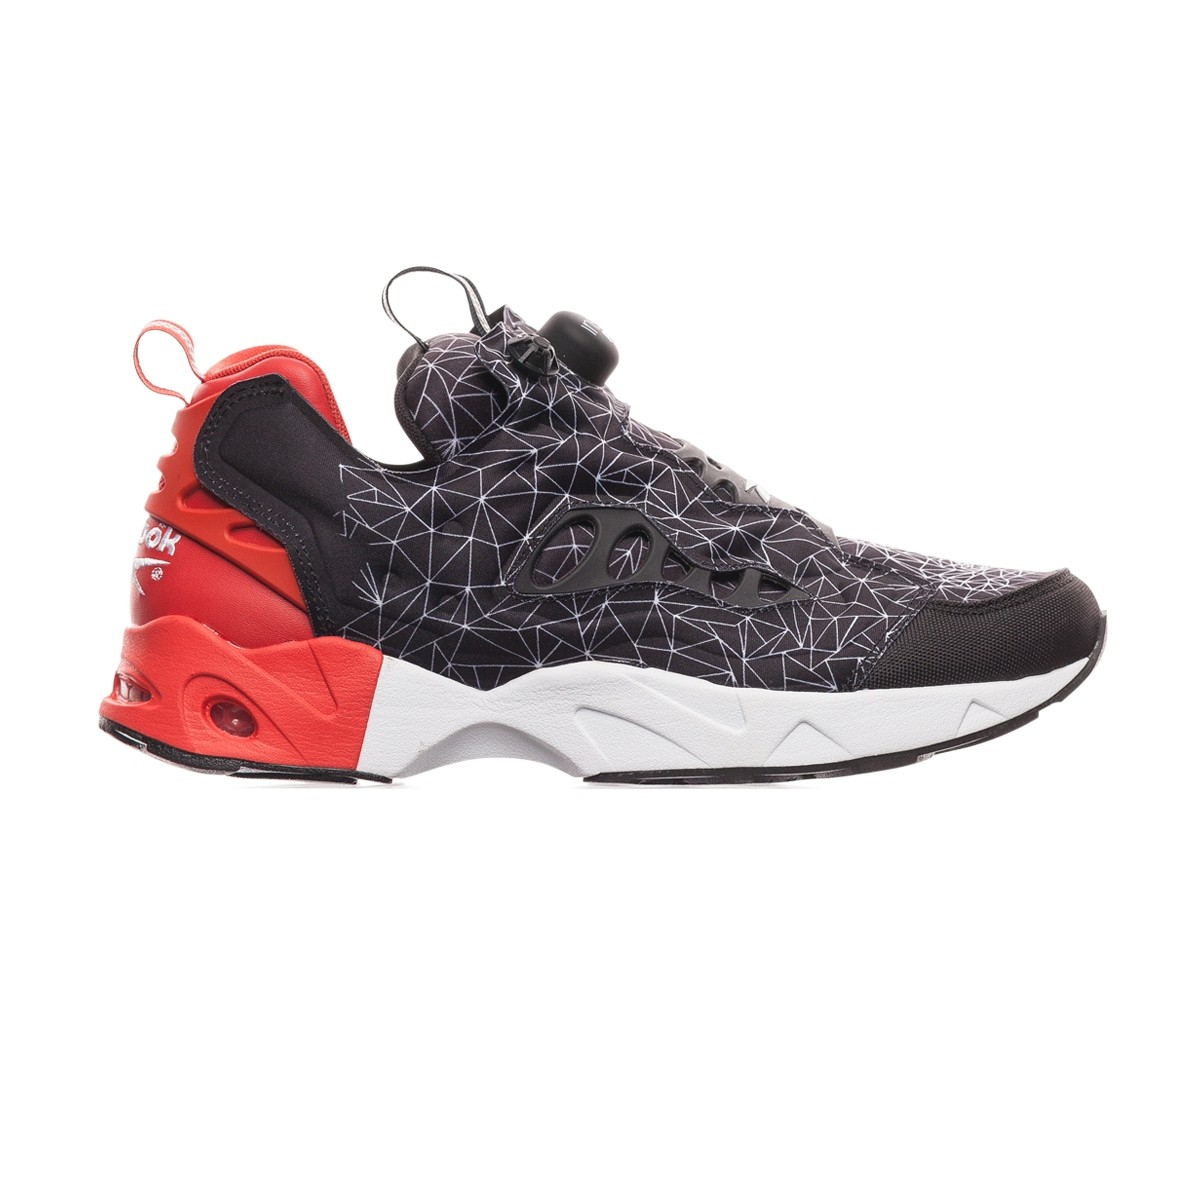 Lyst - Reebok Instapump Fury Road  chinese New Year  Sneakers in ... f4a49889c